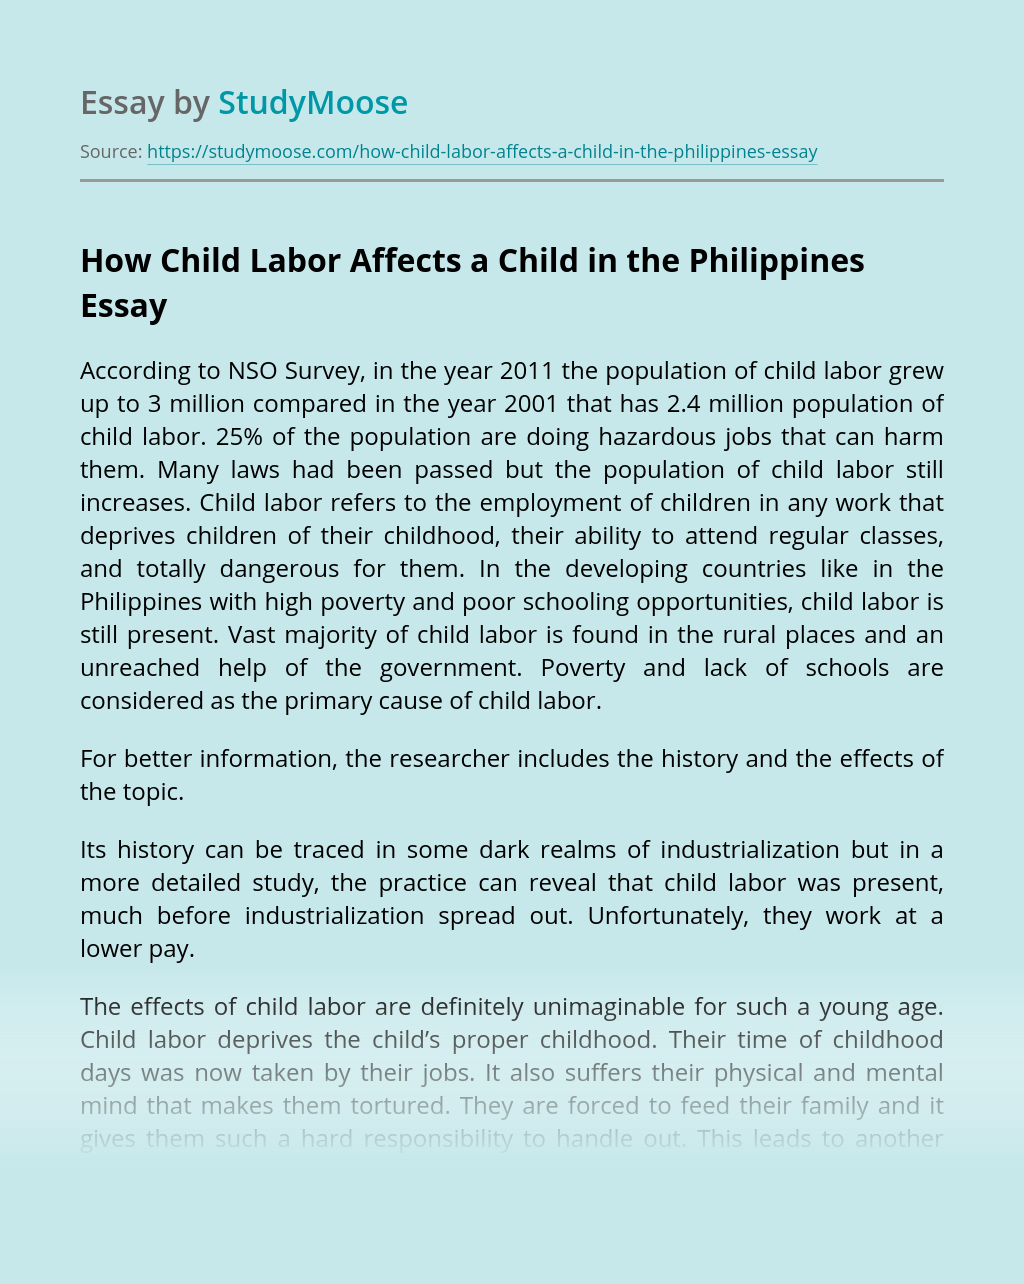 How Child Labor Affects a Child in the Philippines?